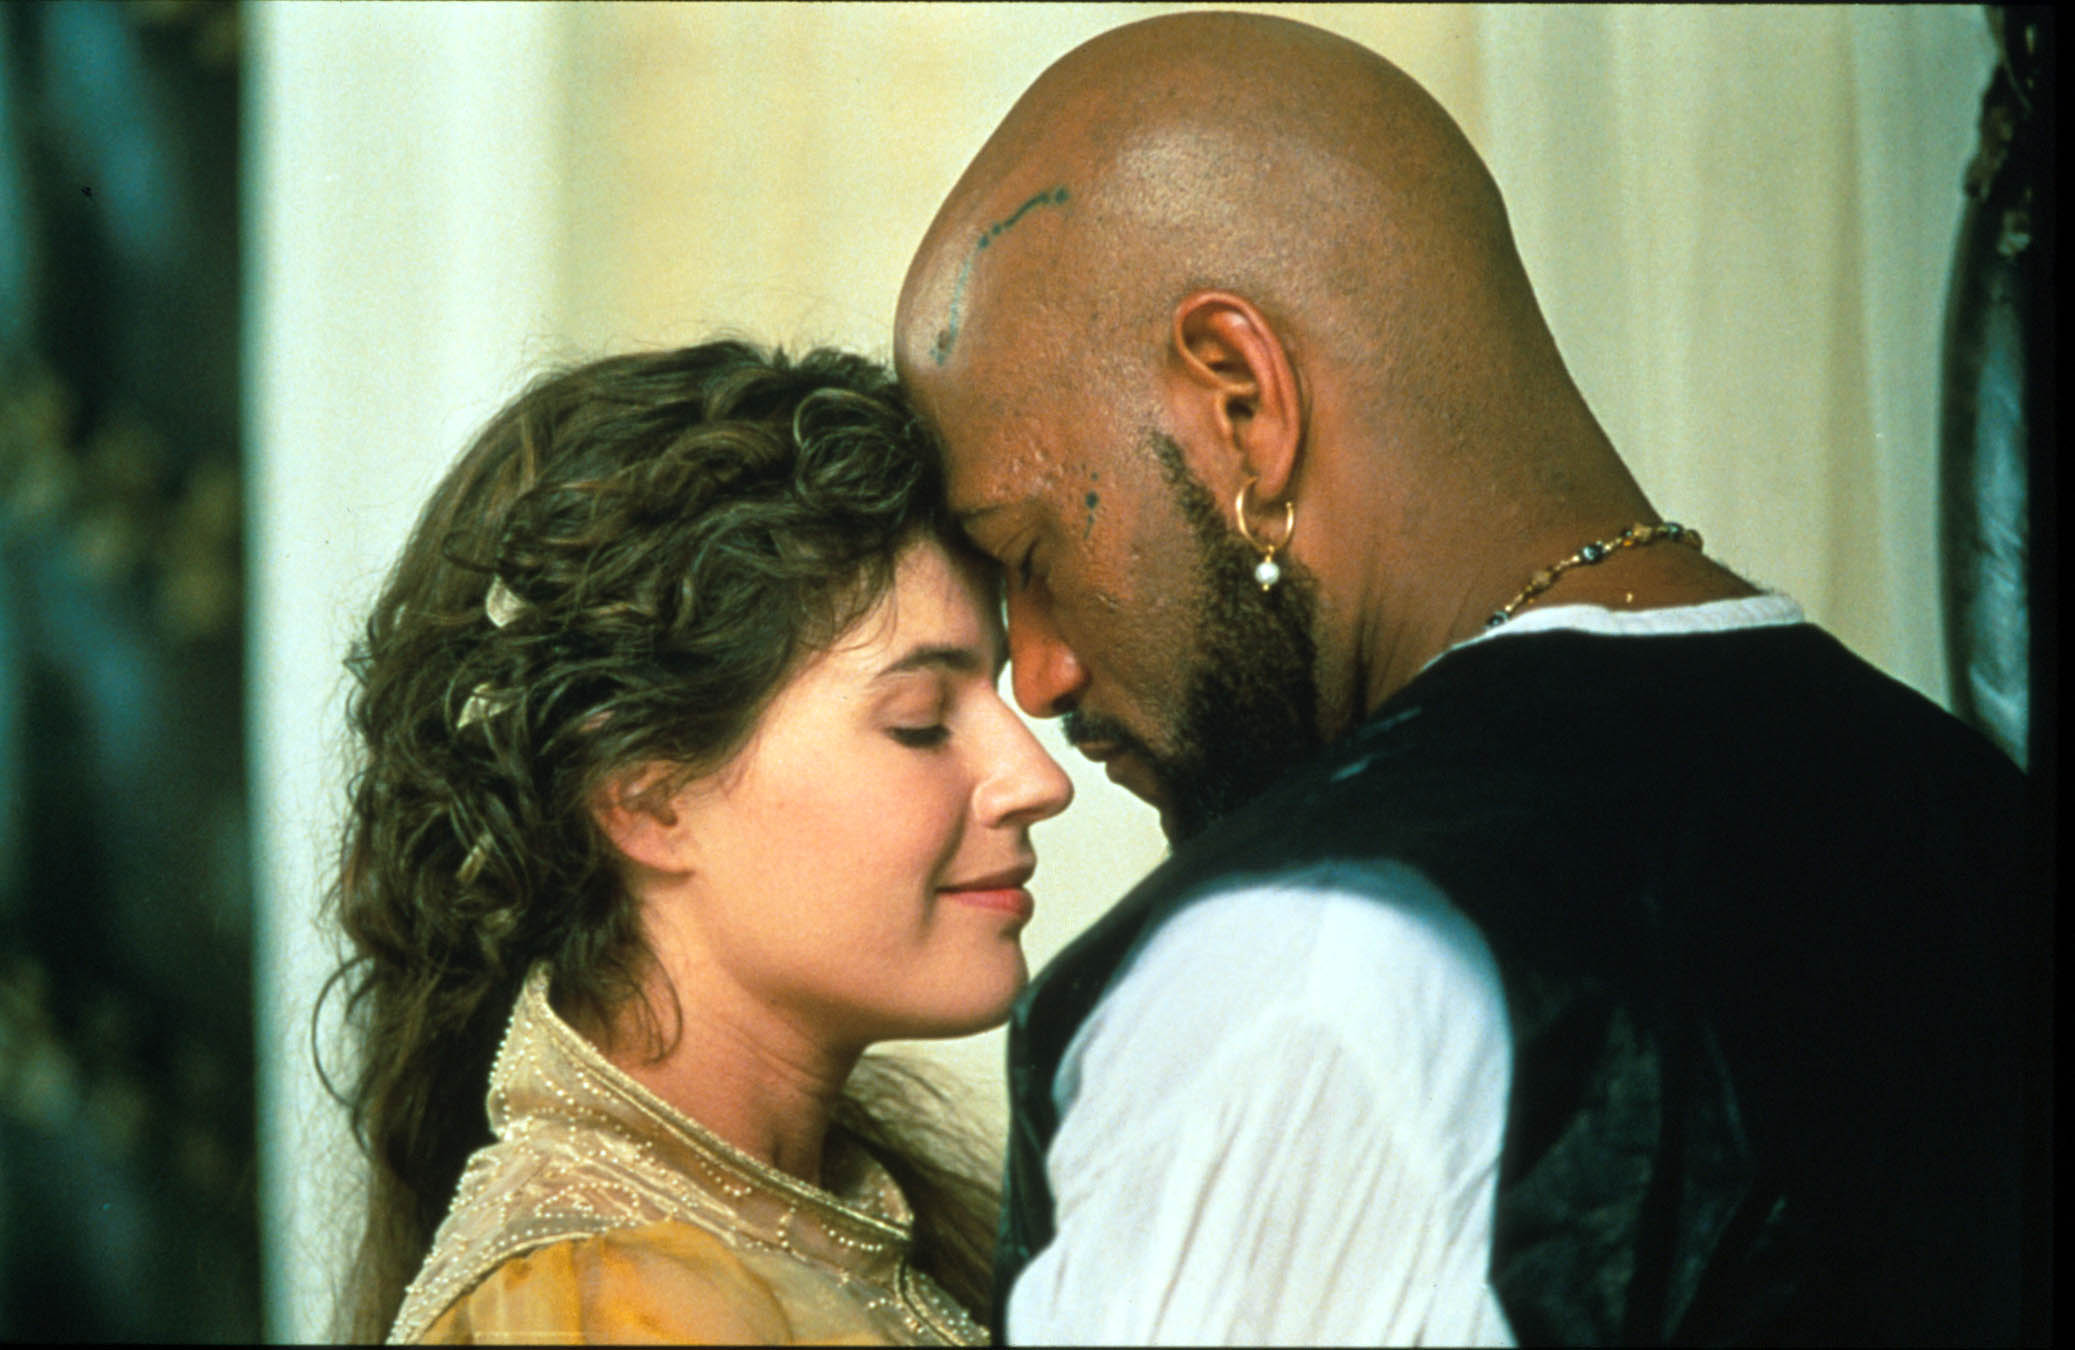 an analysis of othello film reproduction by oliver parker View and download drama essays examples othello by william shakespeare and the film version of irene jacob, and oliver parker this film is.